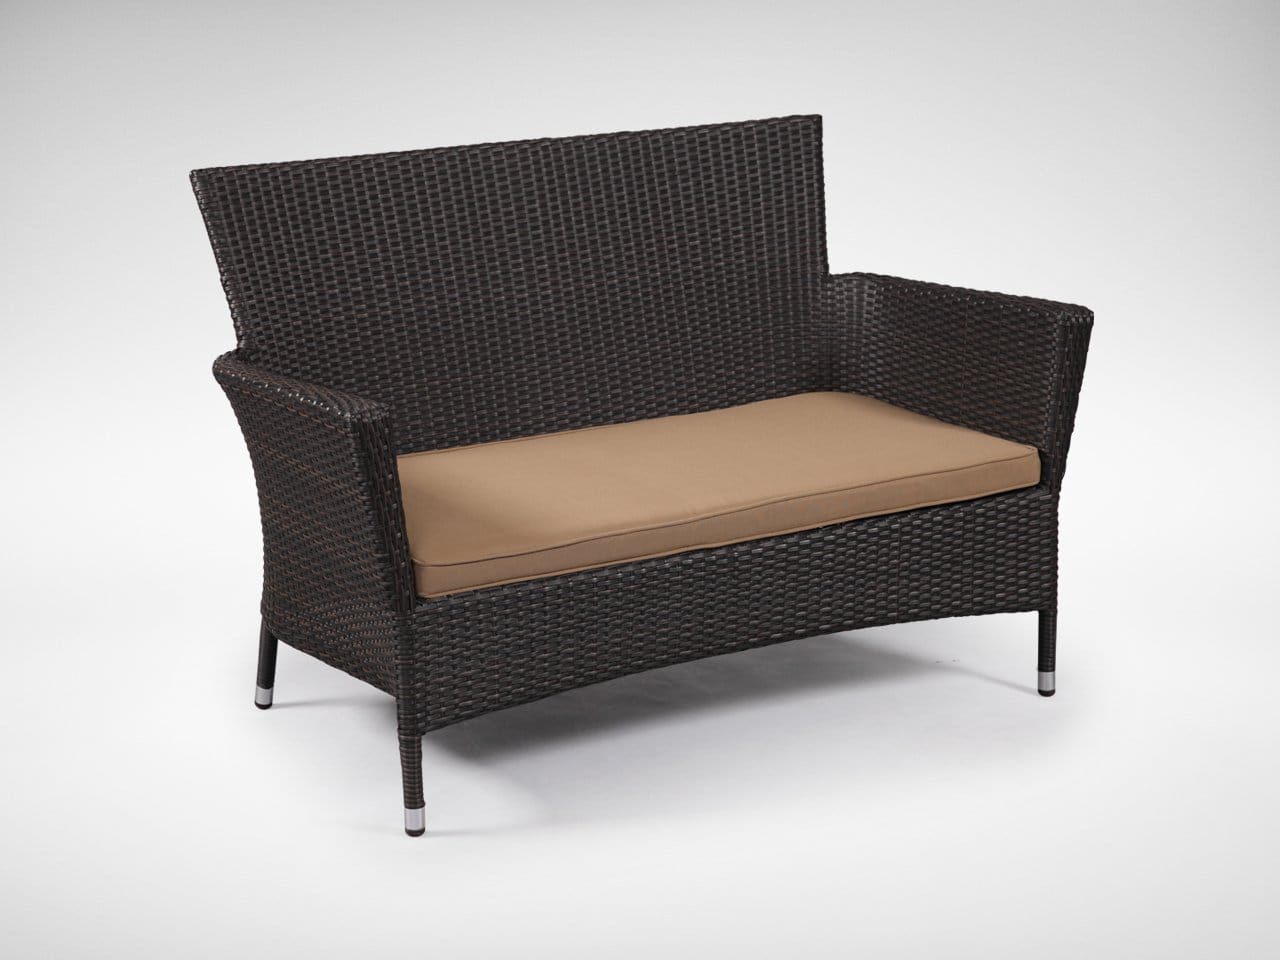 outdoor sofa singapore solid oak table bahamas comfort design the chair and